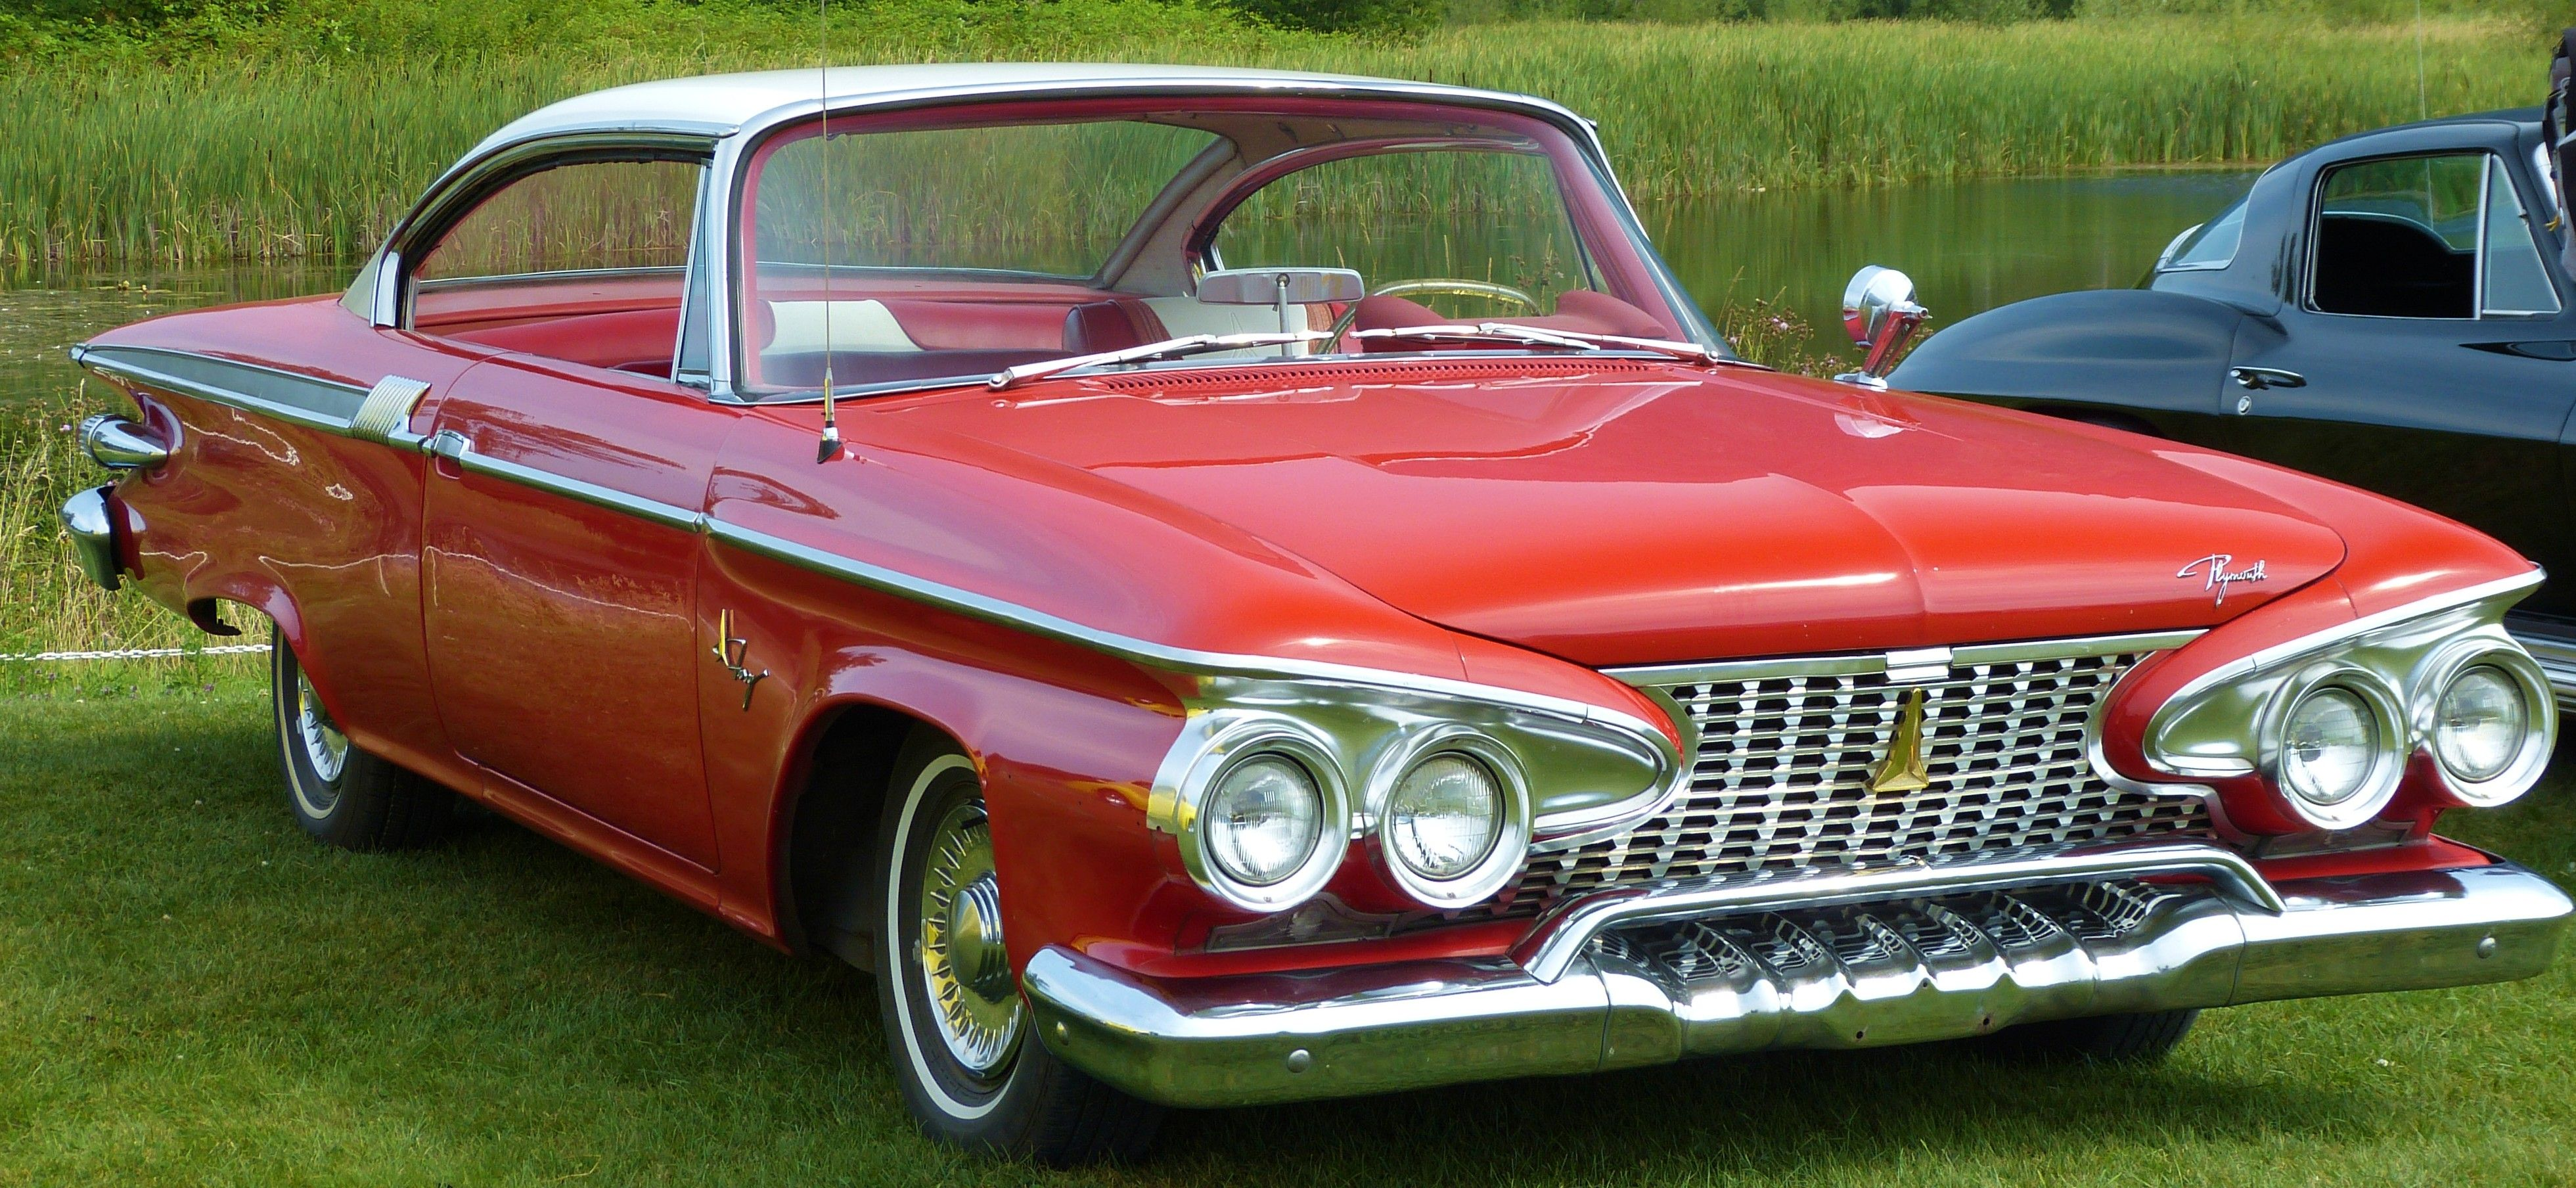 My Pics Of A 1961 Plymouth Fury Photo Section Bob Is